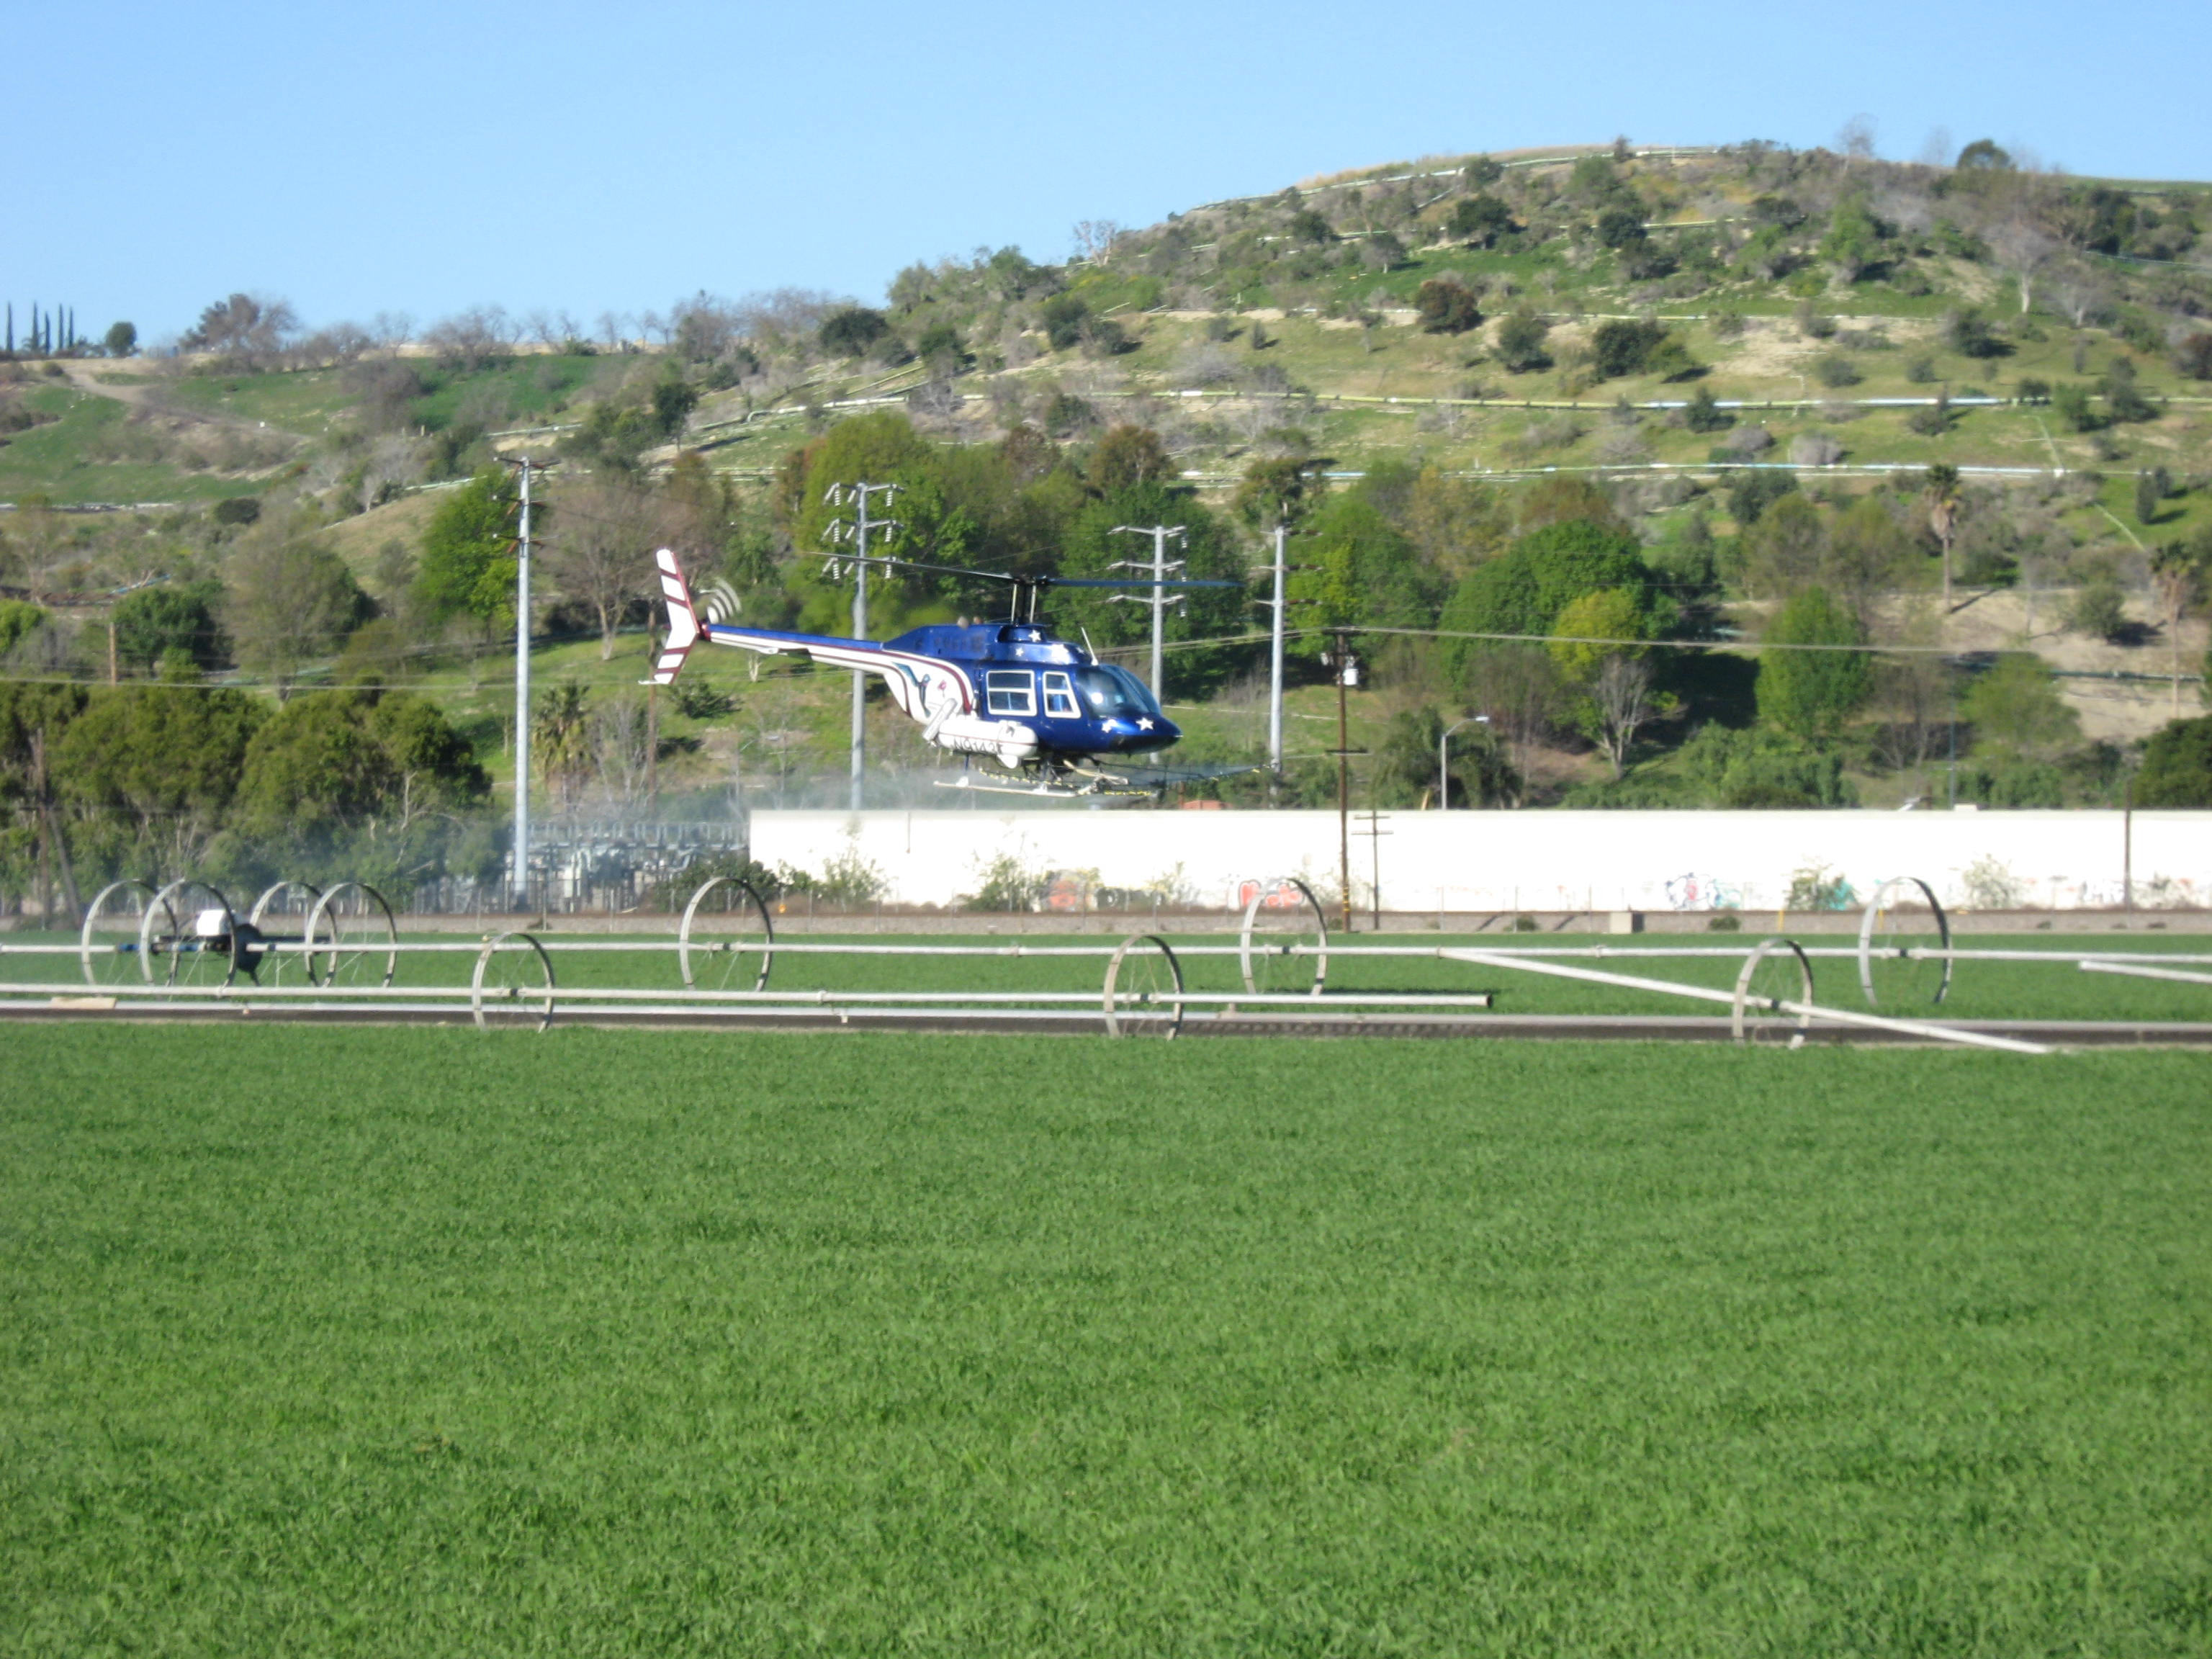 Helicopter hovering to spray field